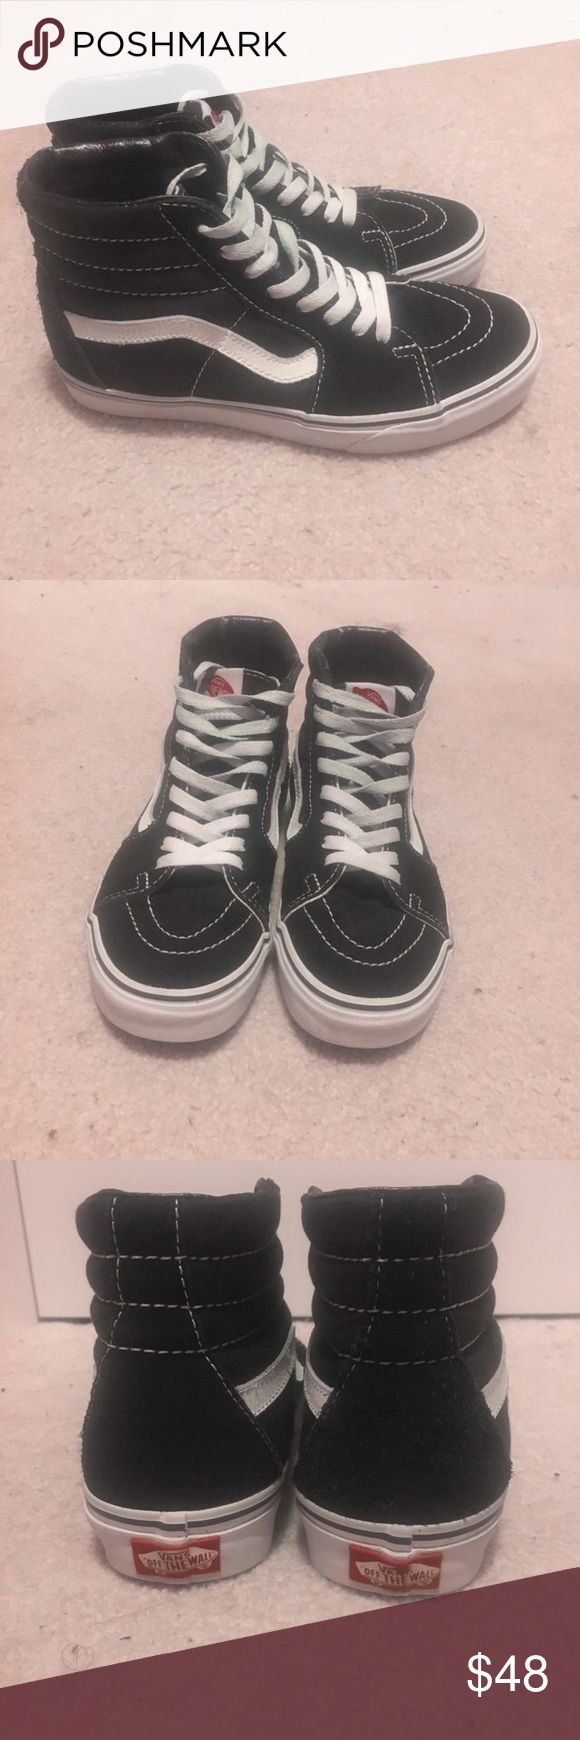 Black Sk8 Hi Vans these are black sk8 hi vans and have only been worn a few times. they are in very good condition and there are no problems with them other than a small gray stain on one of the white stripes of the left shoe that can easily be cleaned off (pictured). they are size 7 women's and size 5.5 men's. Vans Shoes Sneakers